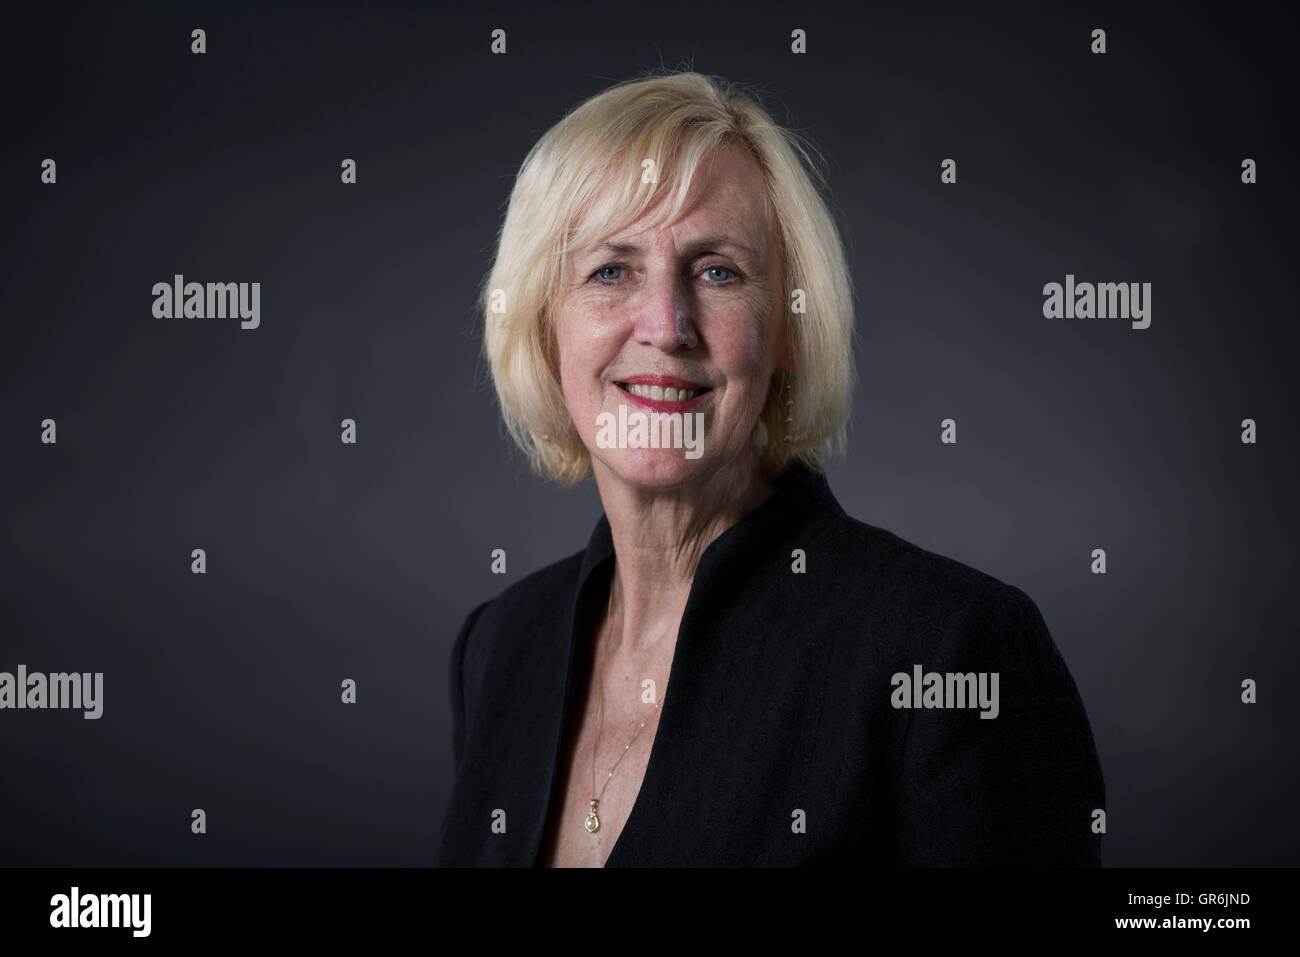 Tartan Noir crime novelist and screenwriter Lin Anderson. - Stock Image